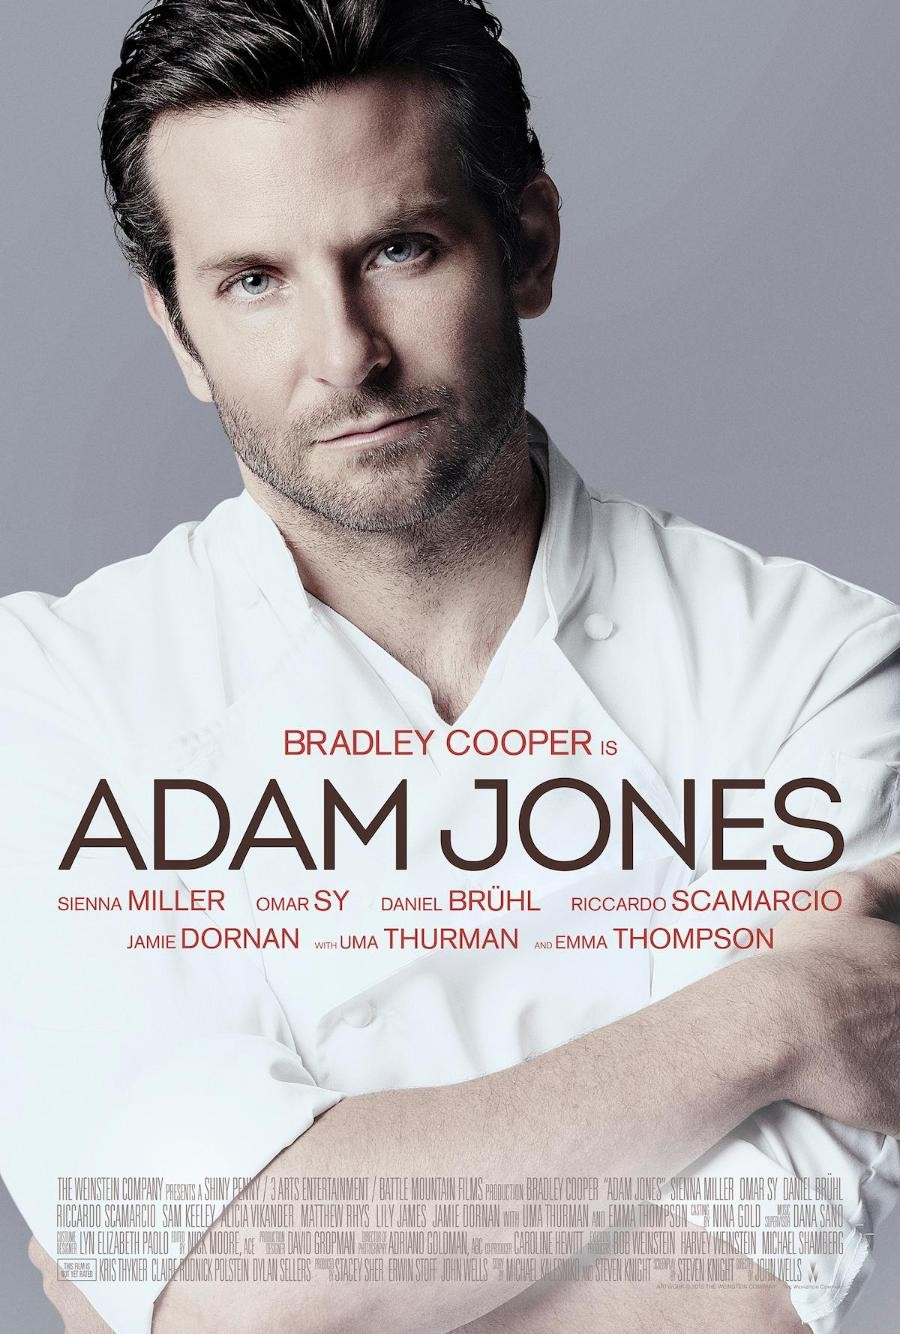 Bradley Cooper is: Some Chef Guy With a Boring-Ass Name. Thankfully they changed the title of this film to something a little less boring, but damn can you really think of no better way to advertise your movie than this boring garbage?